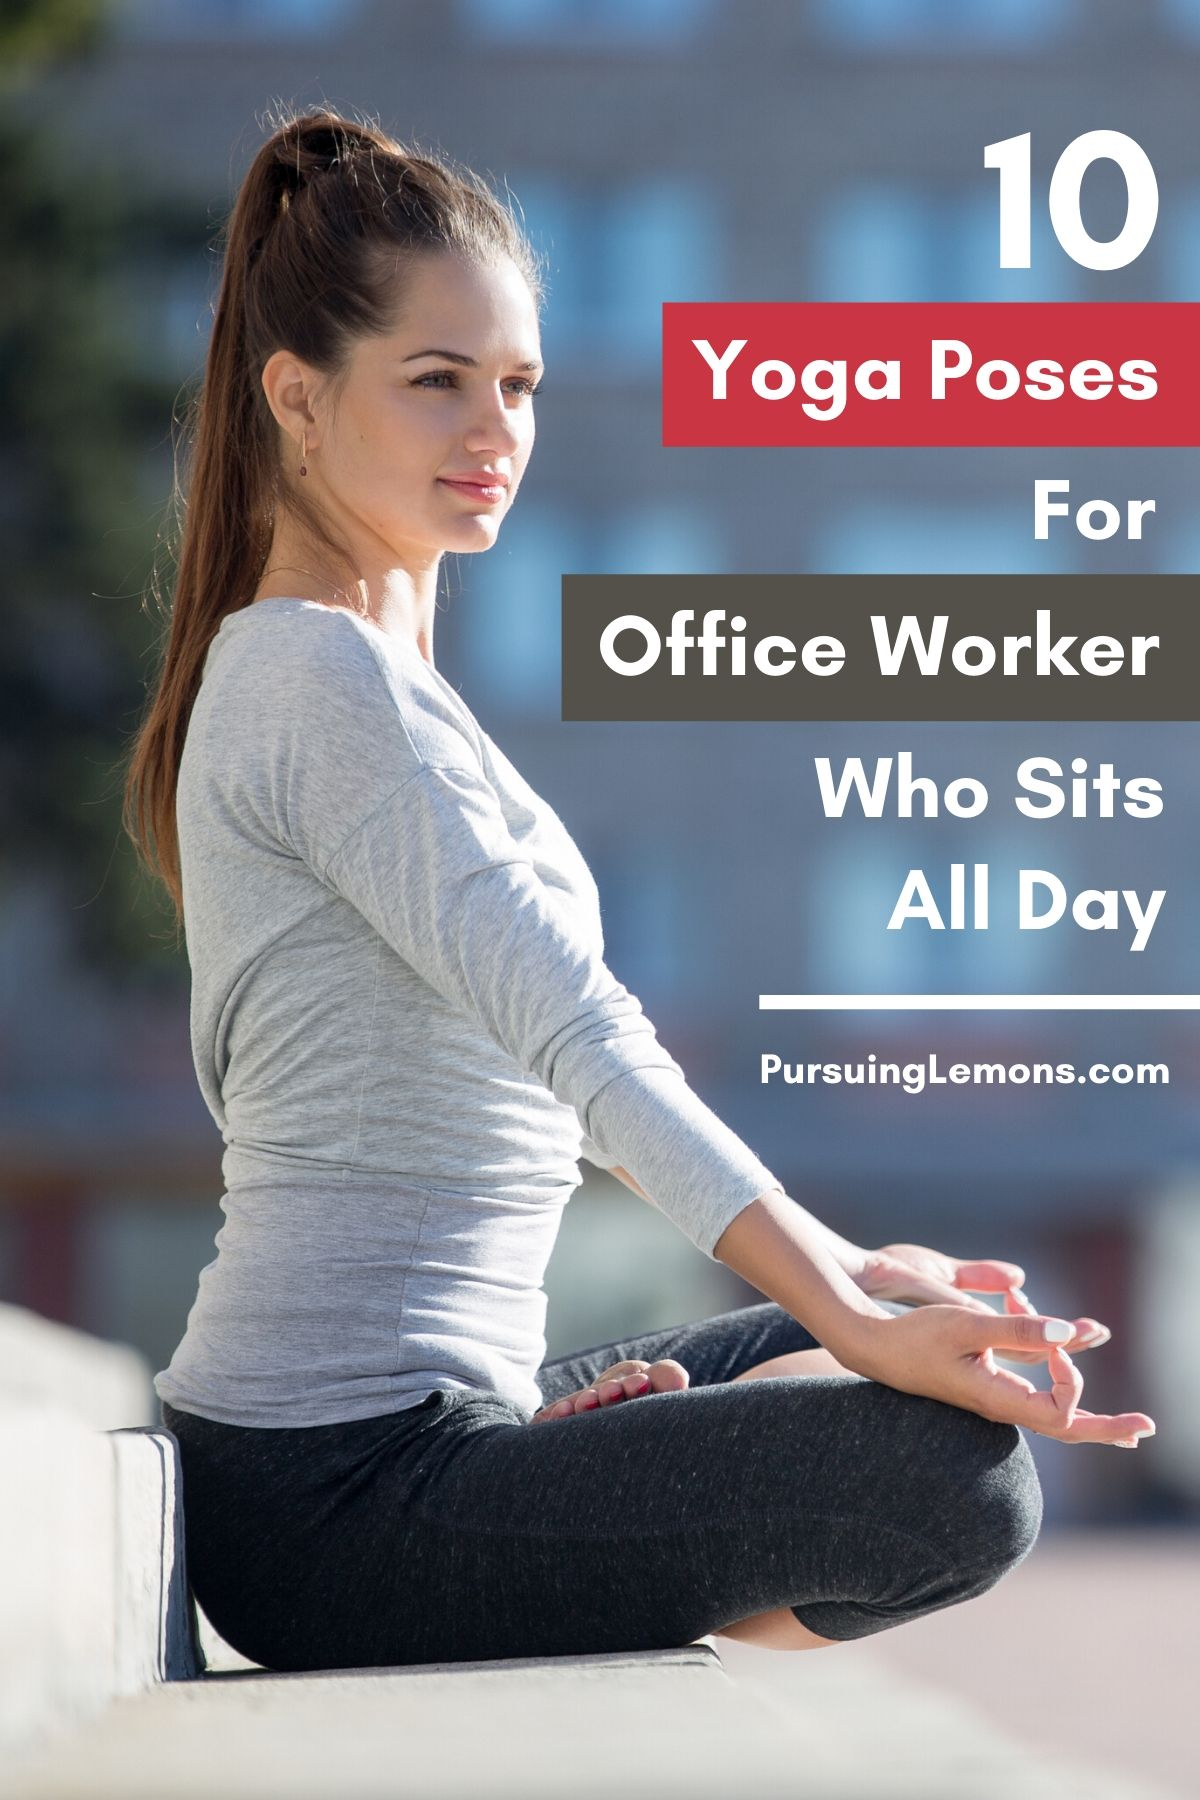 10 Yoga Poses For Office Workers Who Sits All Day| If you work a desk job or you sit most of the day, you might experience tight muscles or back pain. This yoga sequence includes back stretches, neck stretches and hip stretches that will help with relieving lower back pain, neck pain, hip pain, and any other discomfort you may have from work #yoga #officeworkers #yogaforofficeworkers #yogaforwork